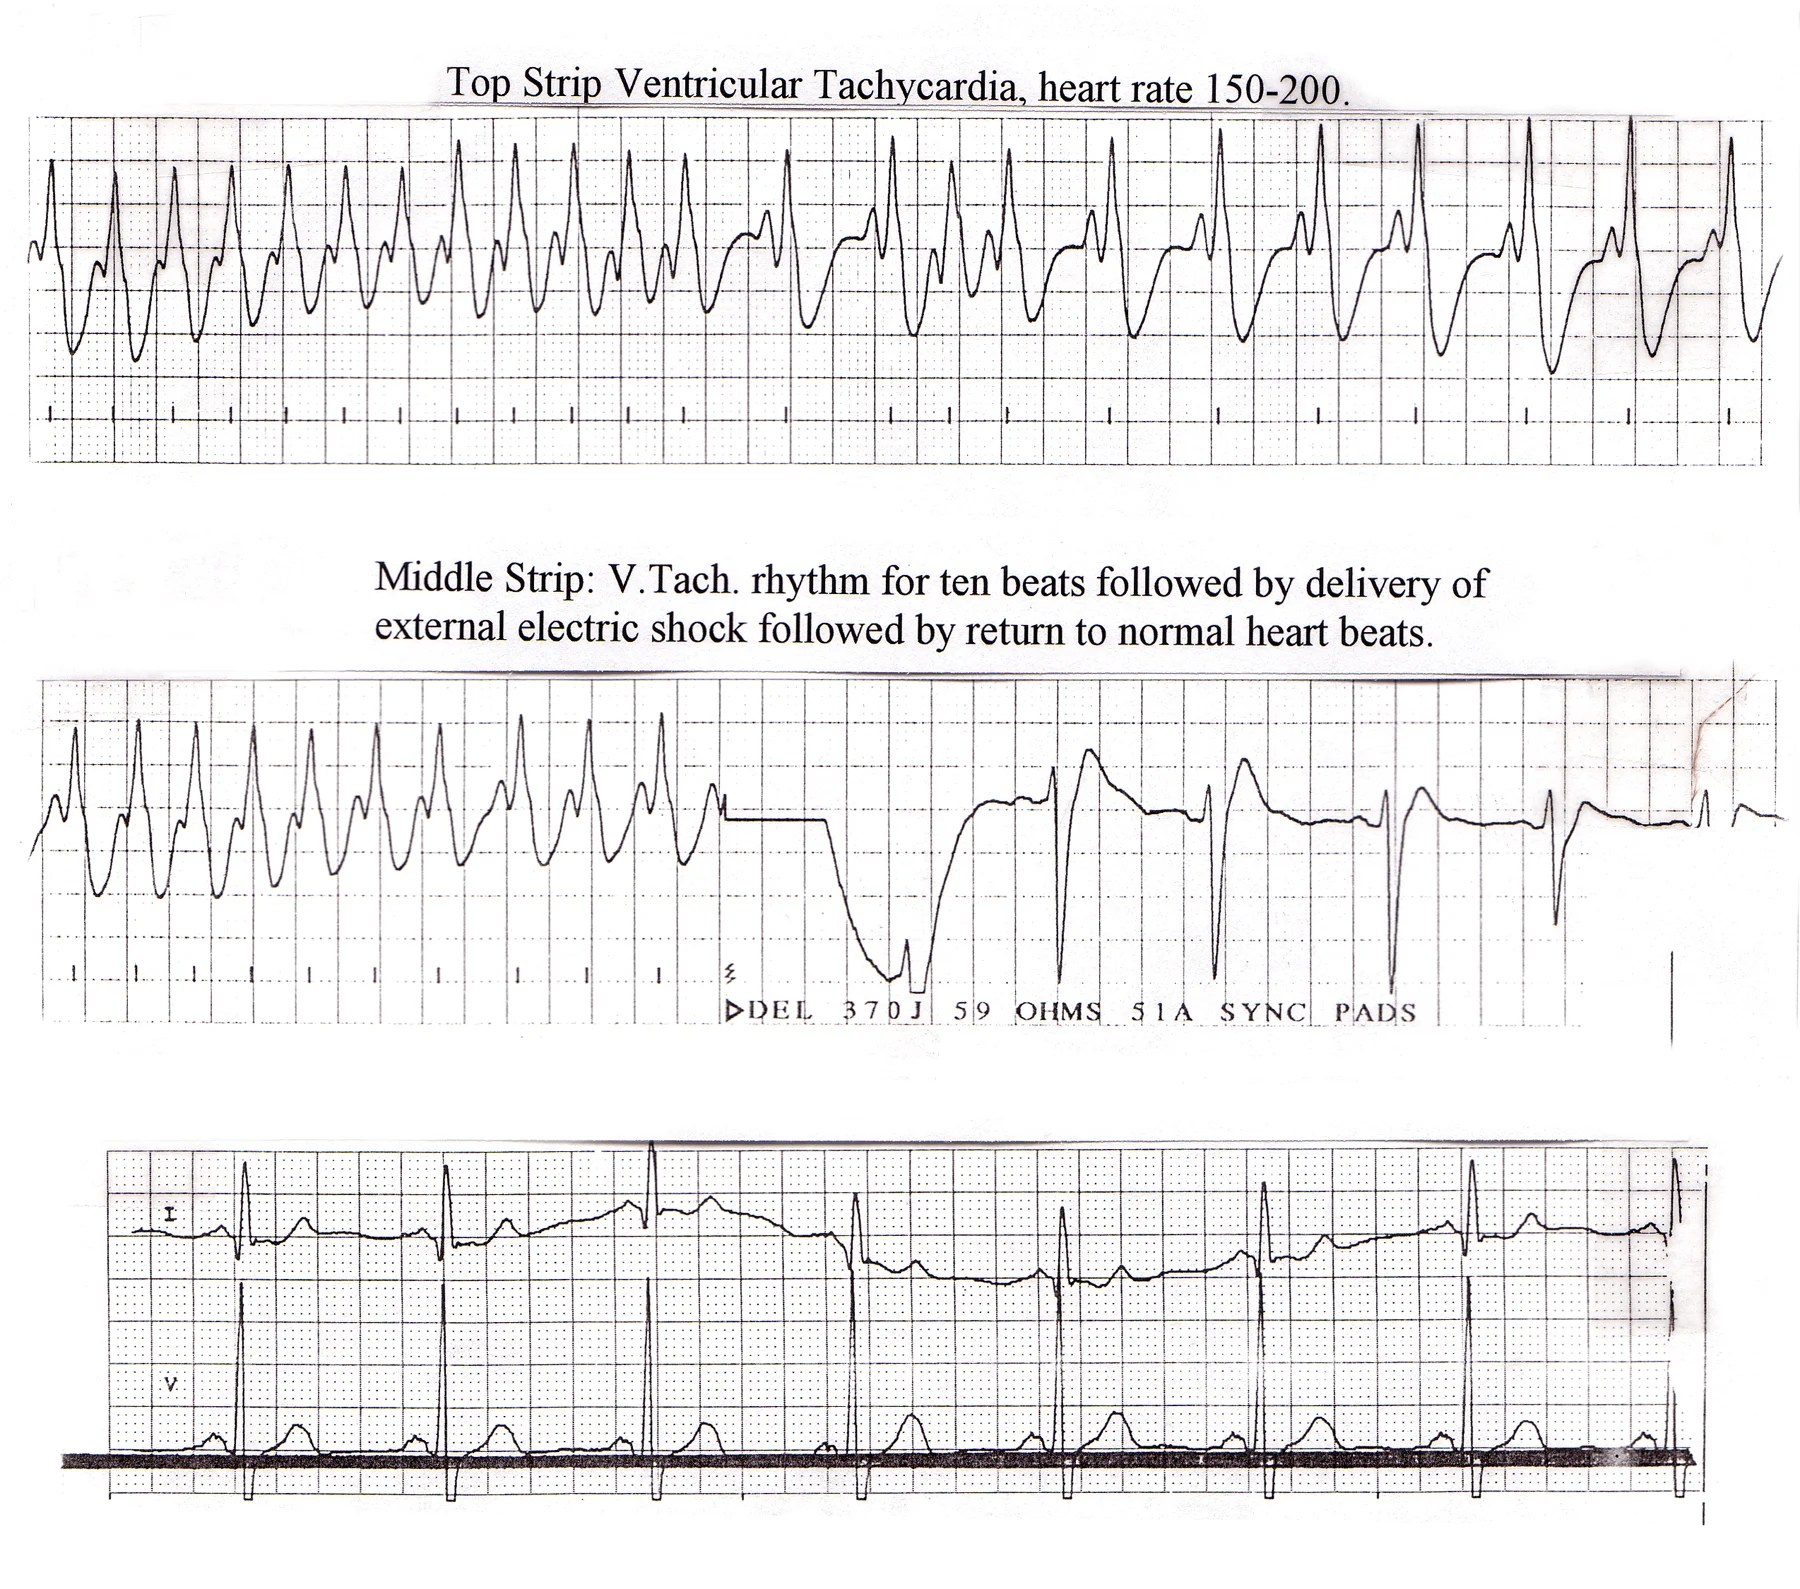 hight resolution of rhythm strip of a person who was cardioverted